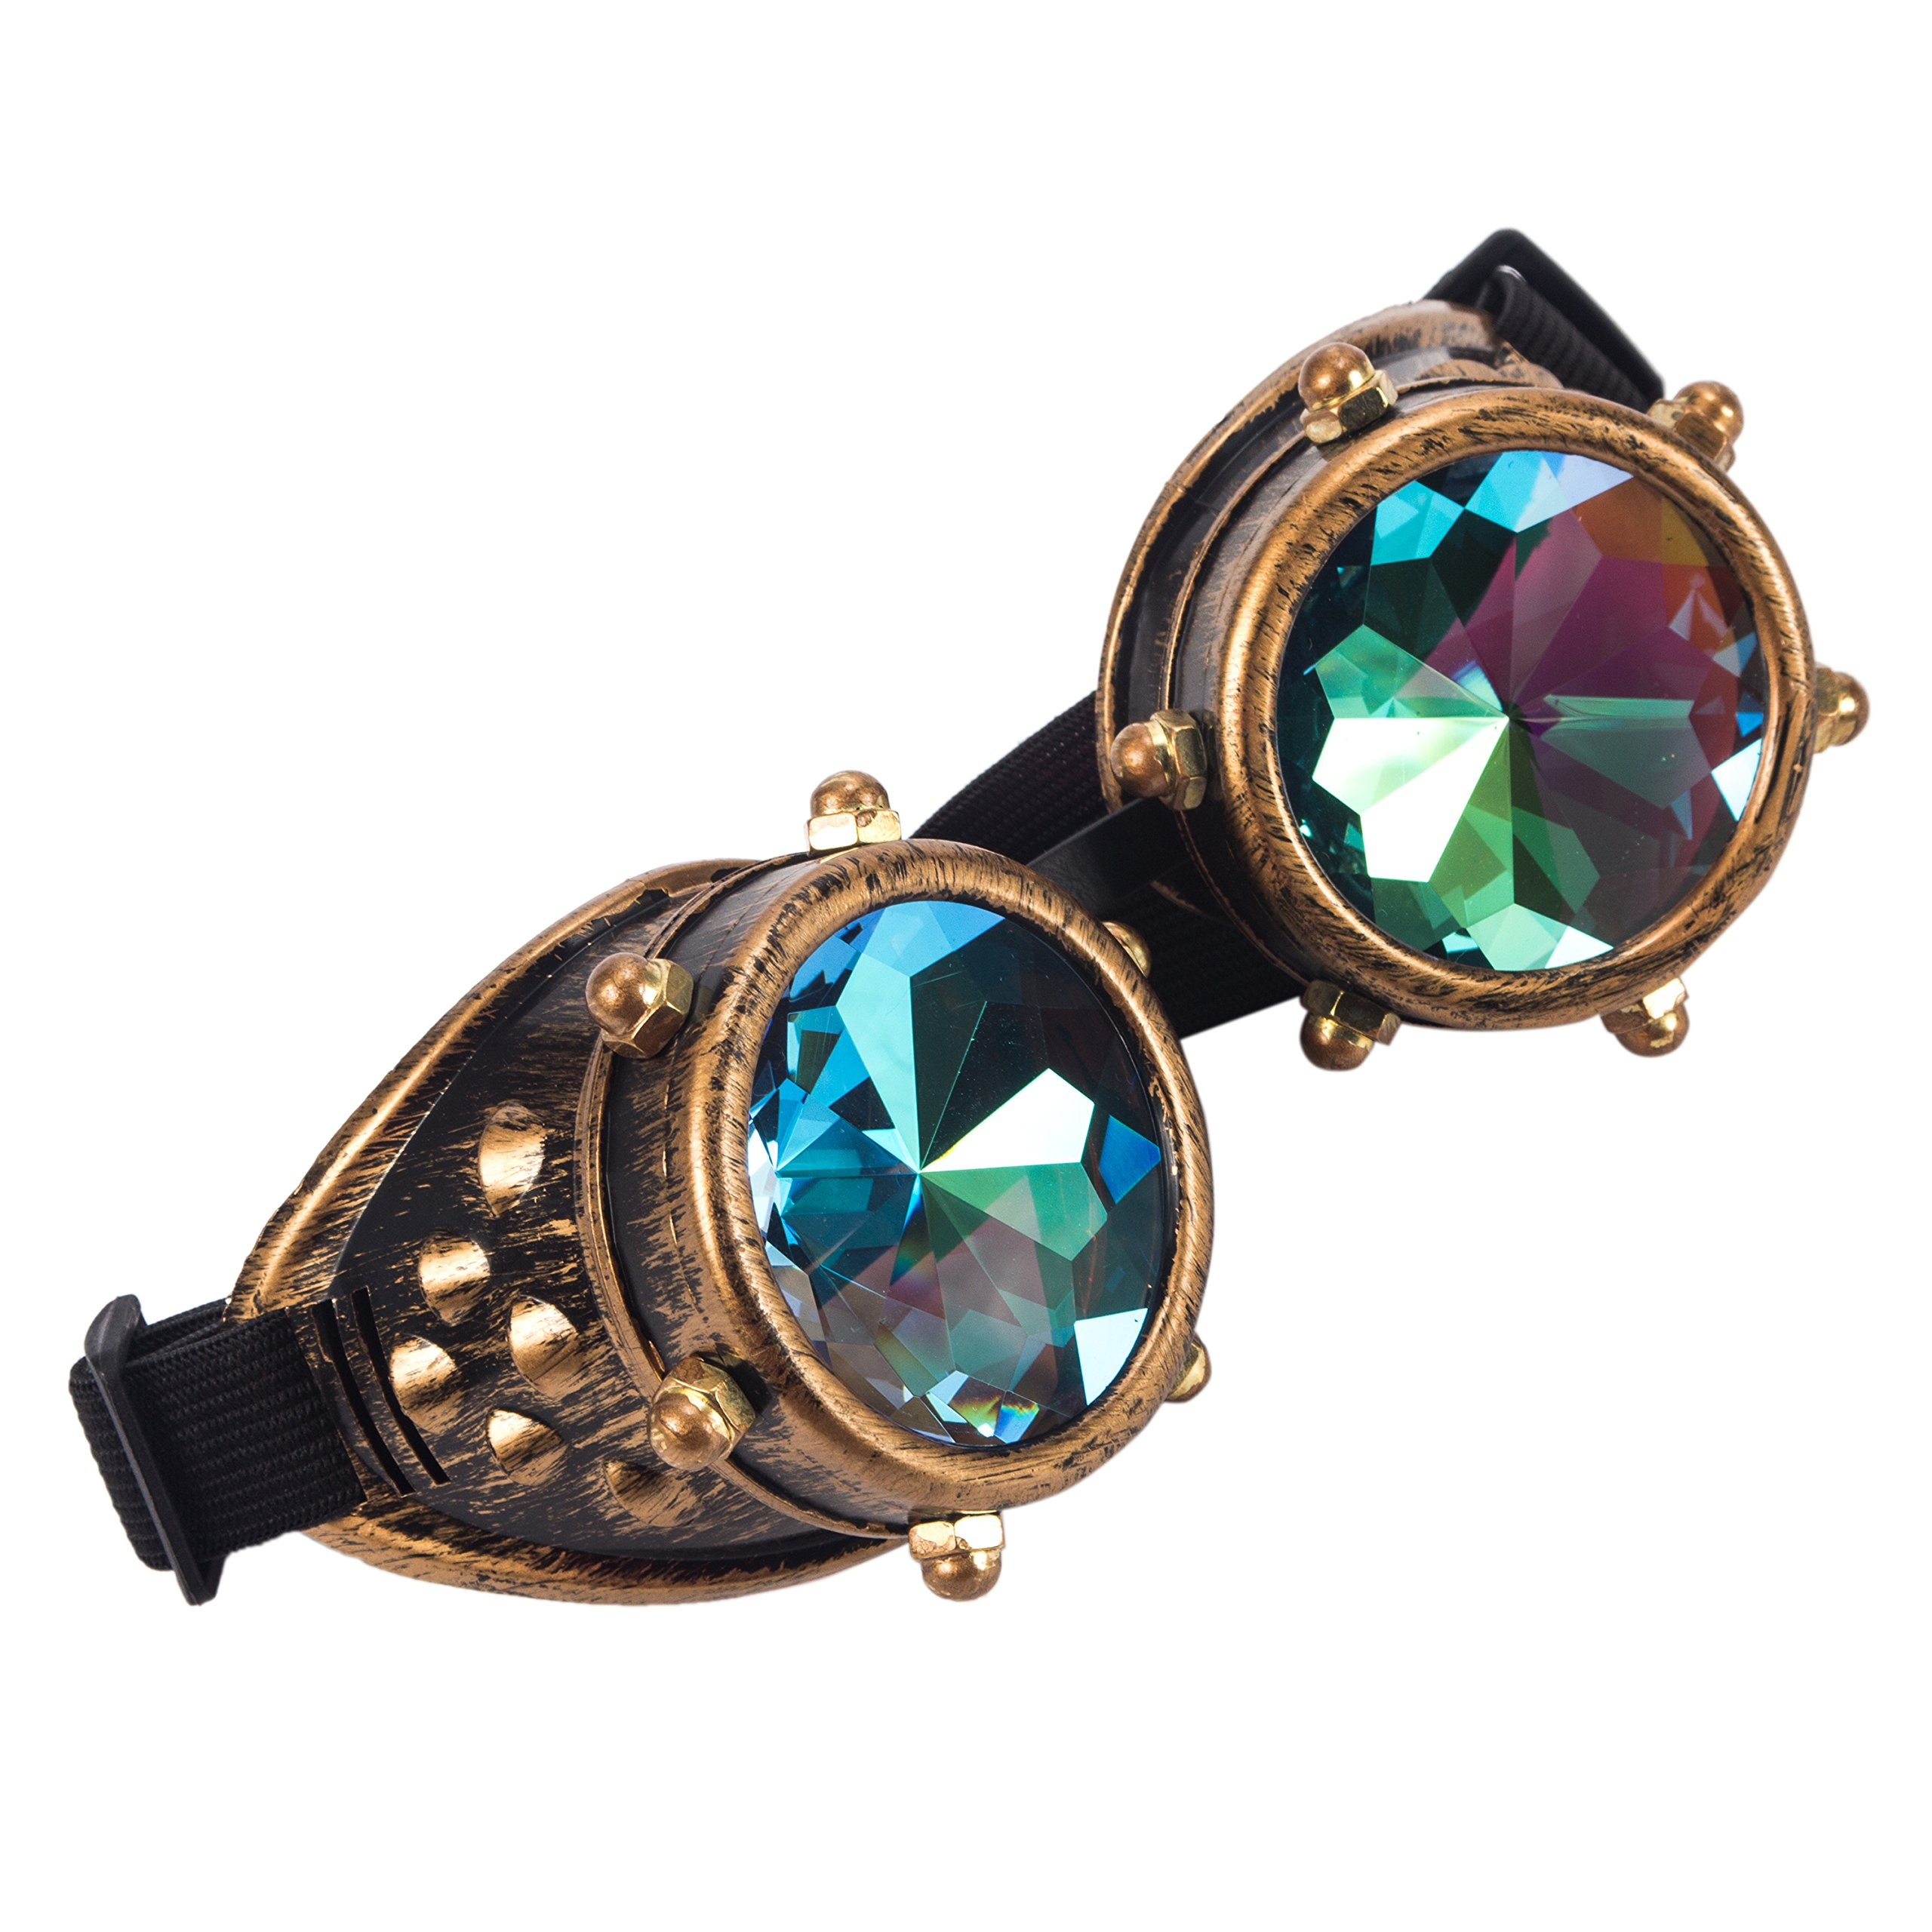 Kaleidoscope Rave Rainbow Crystal Lenses Steampunk Goggles Spike Halloween (One Size-Adjustable head band, Bronze-with Screws)